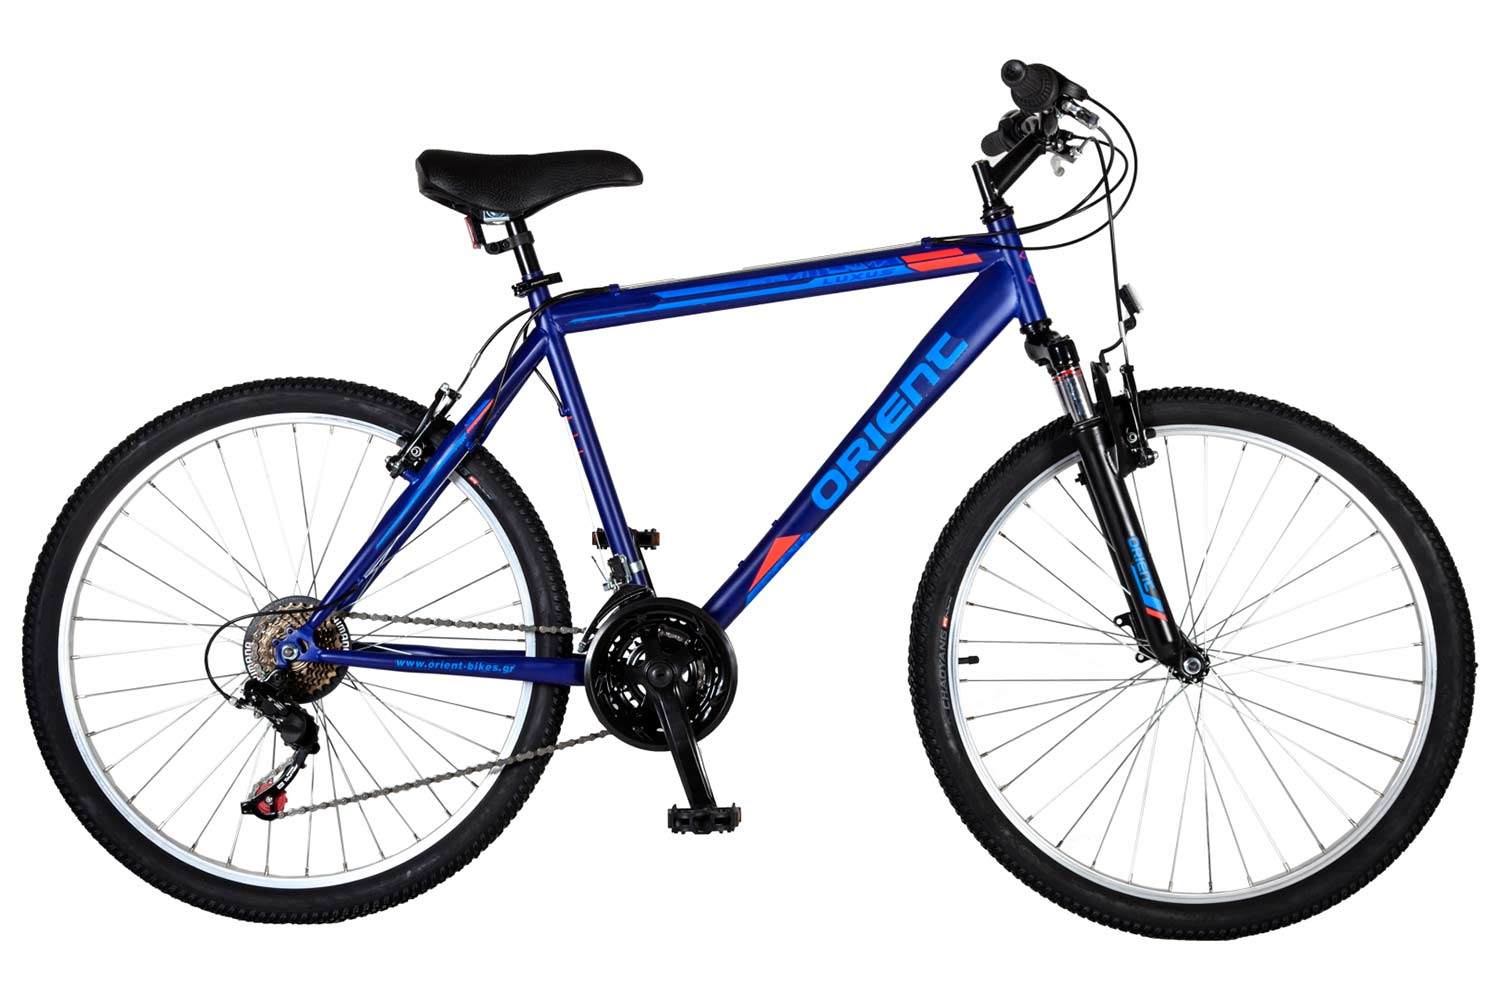 LUXUS 26″ man 21sp. bike image